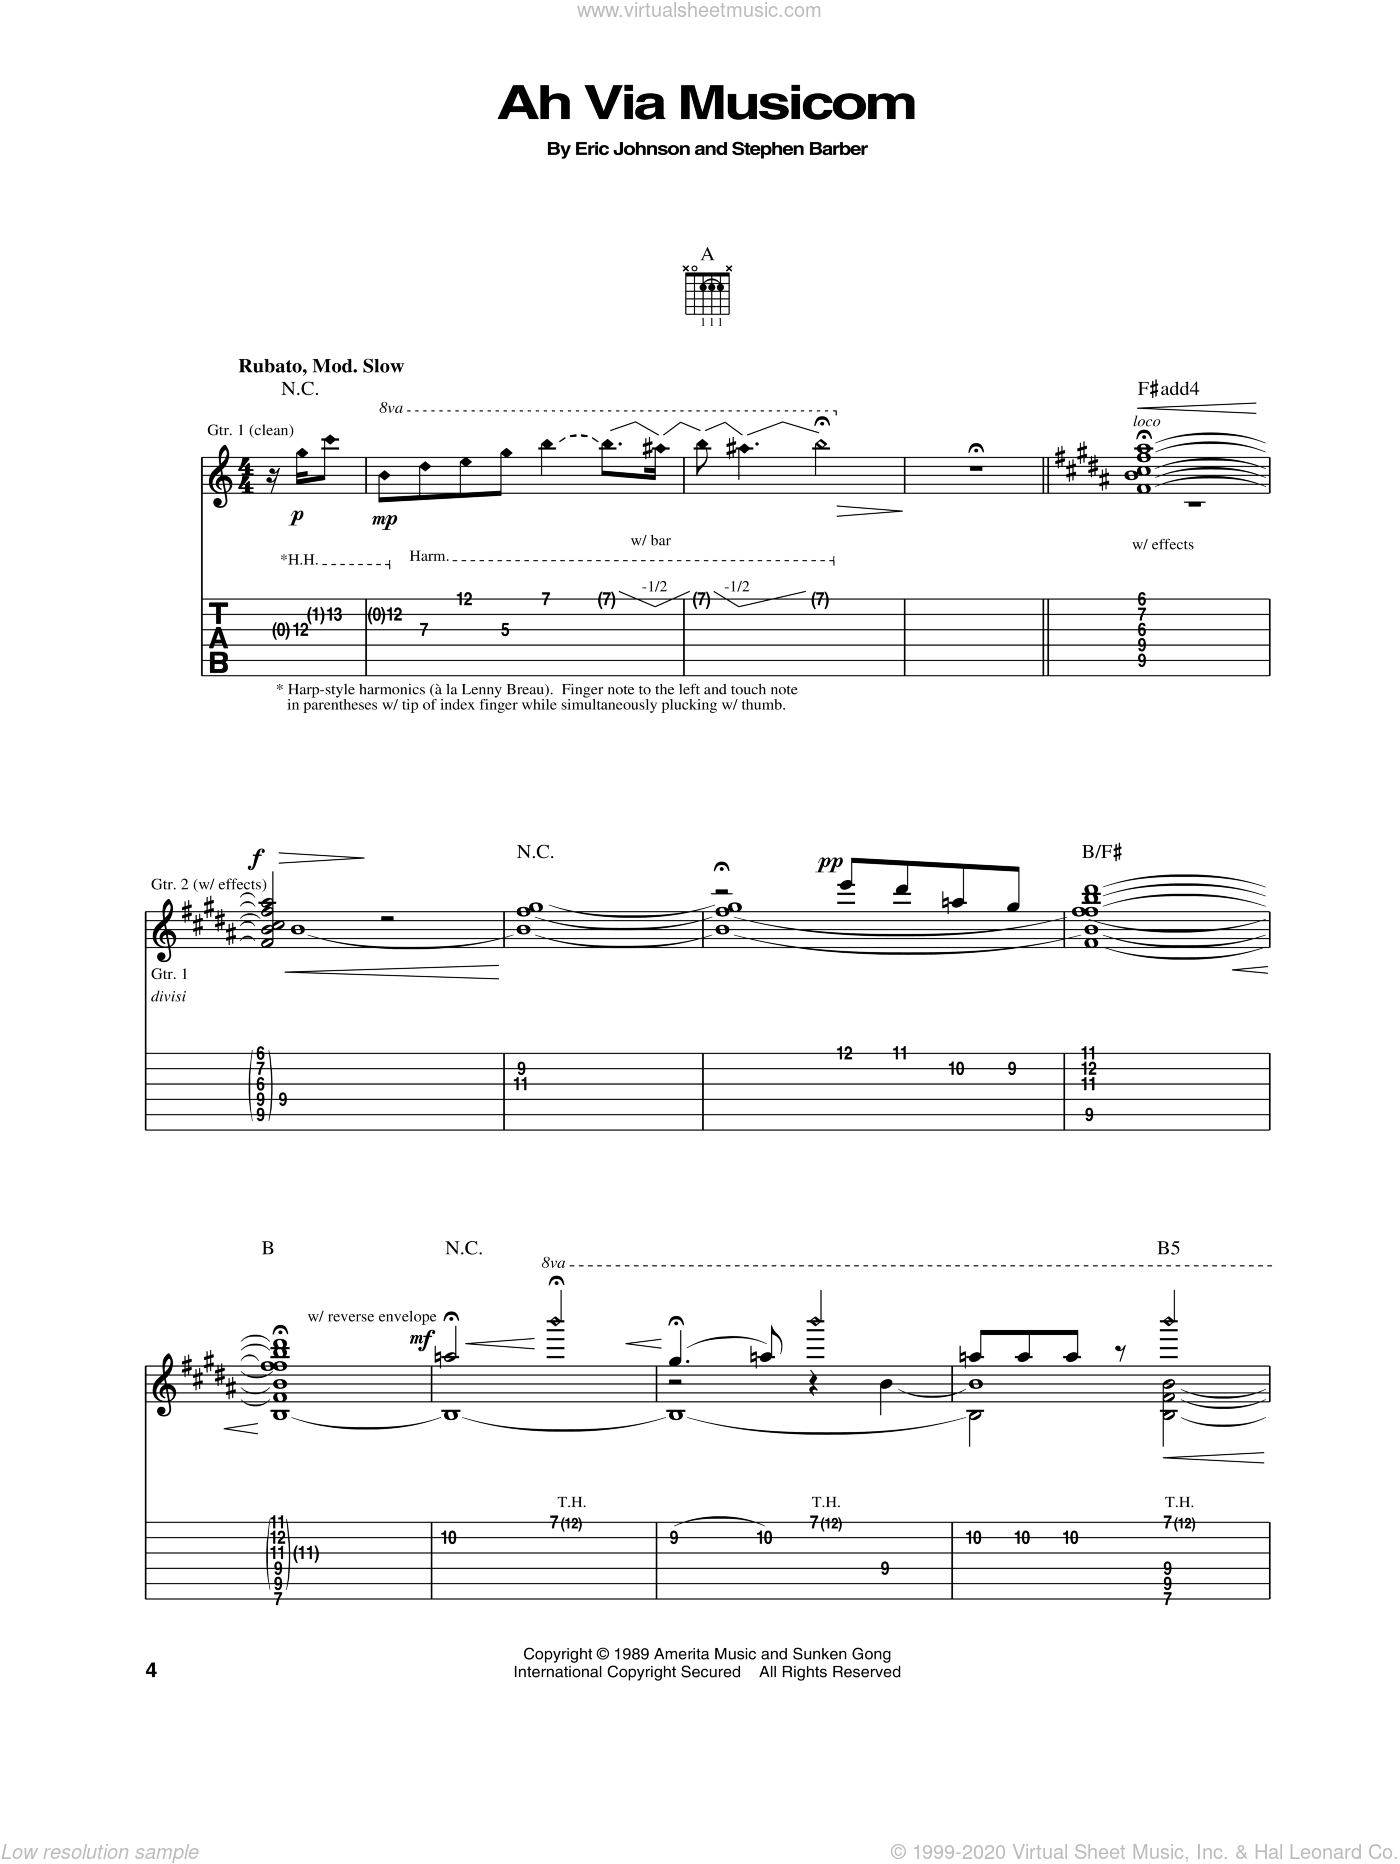 Ah Via Musicom sheet music for guitar (tablature) by Stephen Barber and Eric Johnson. Score Image Preview.